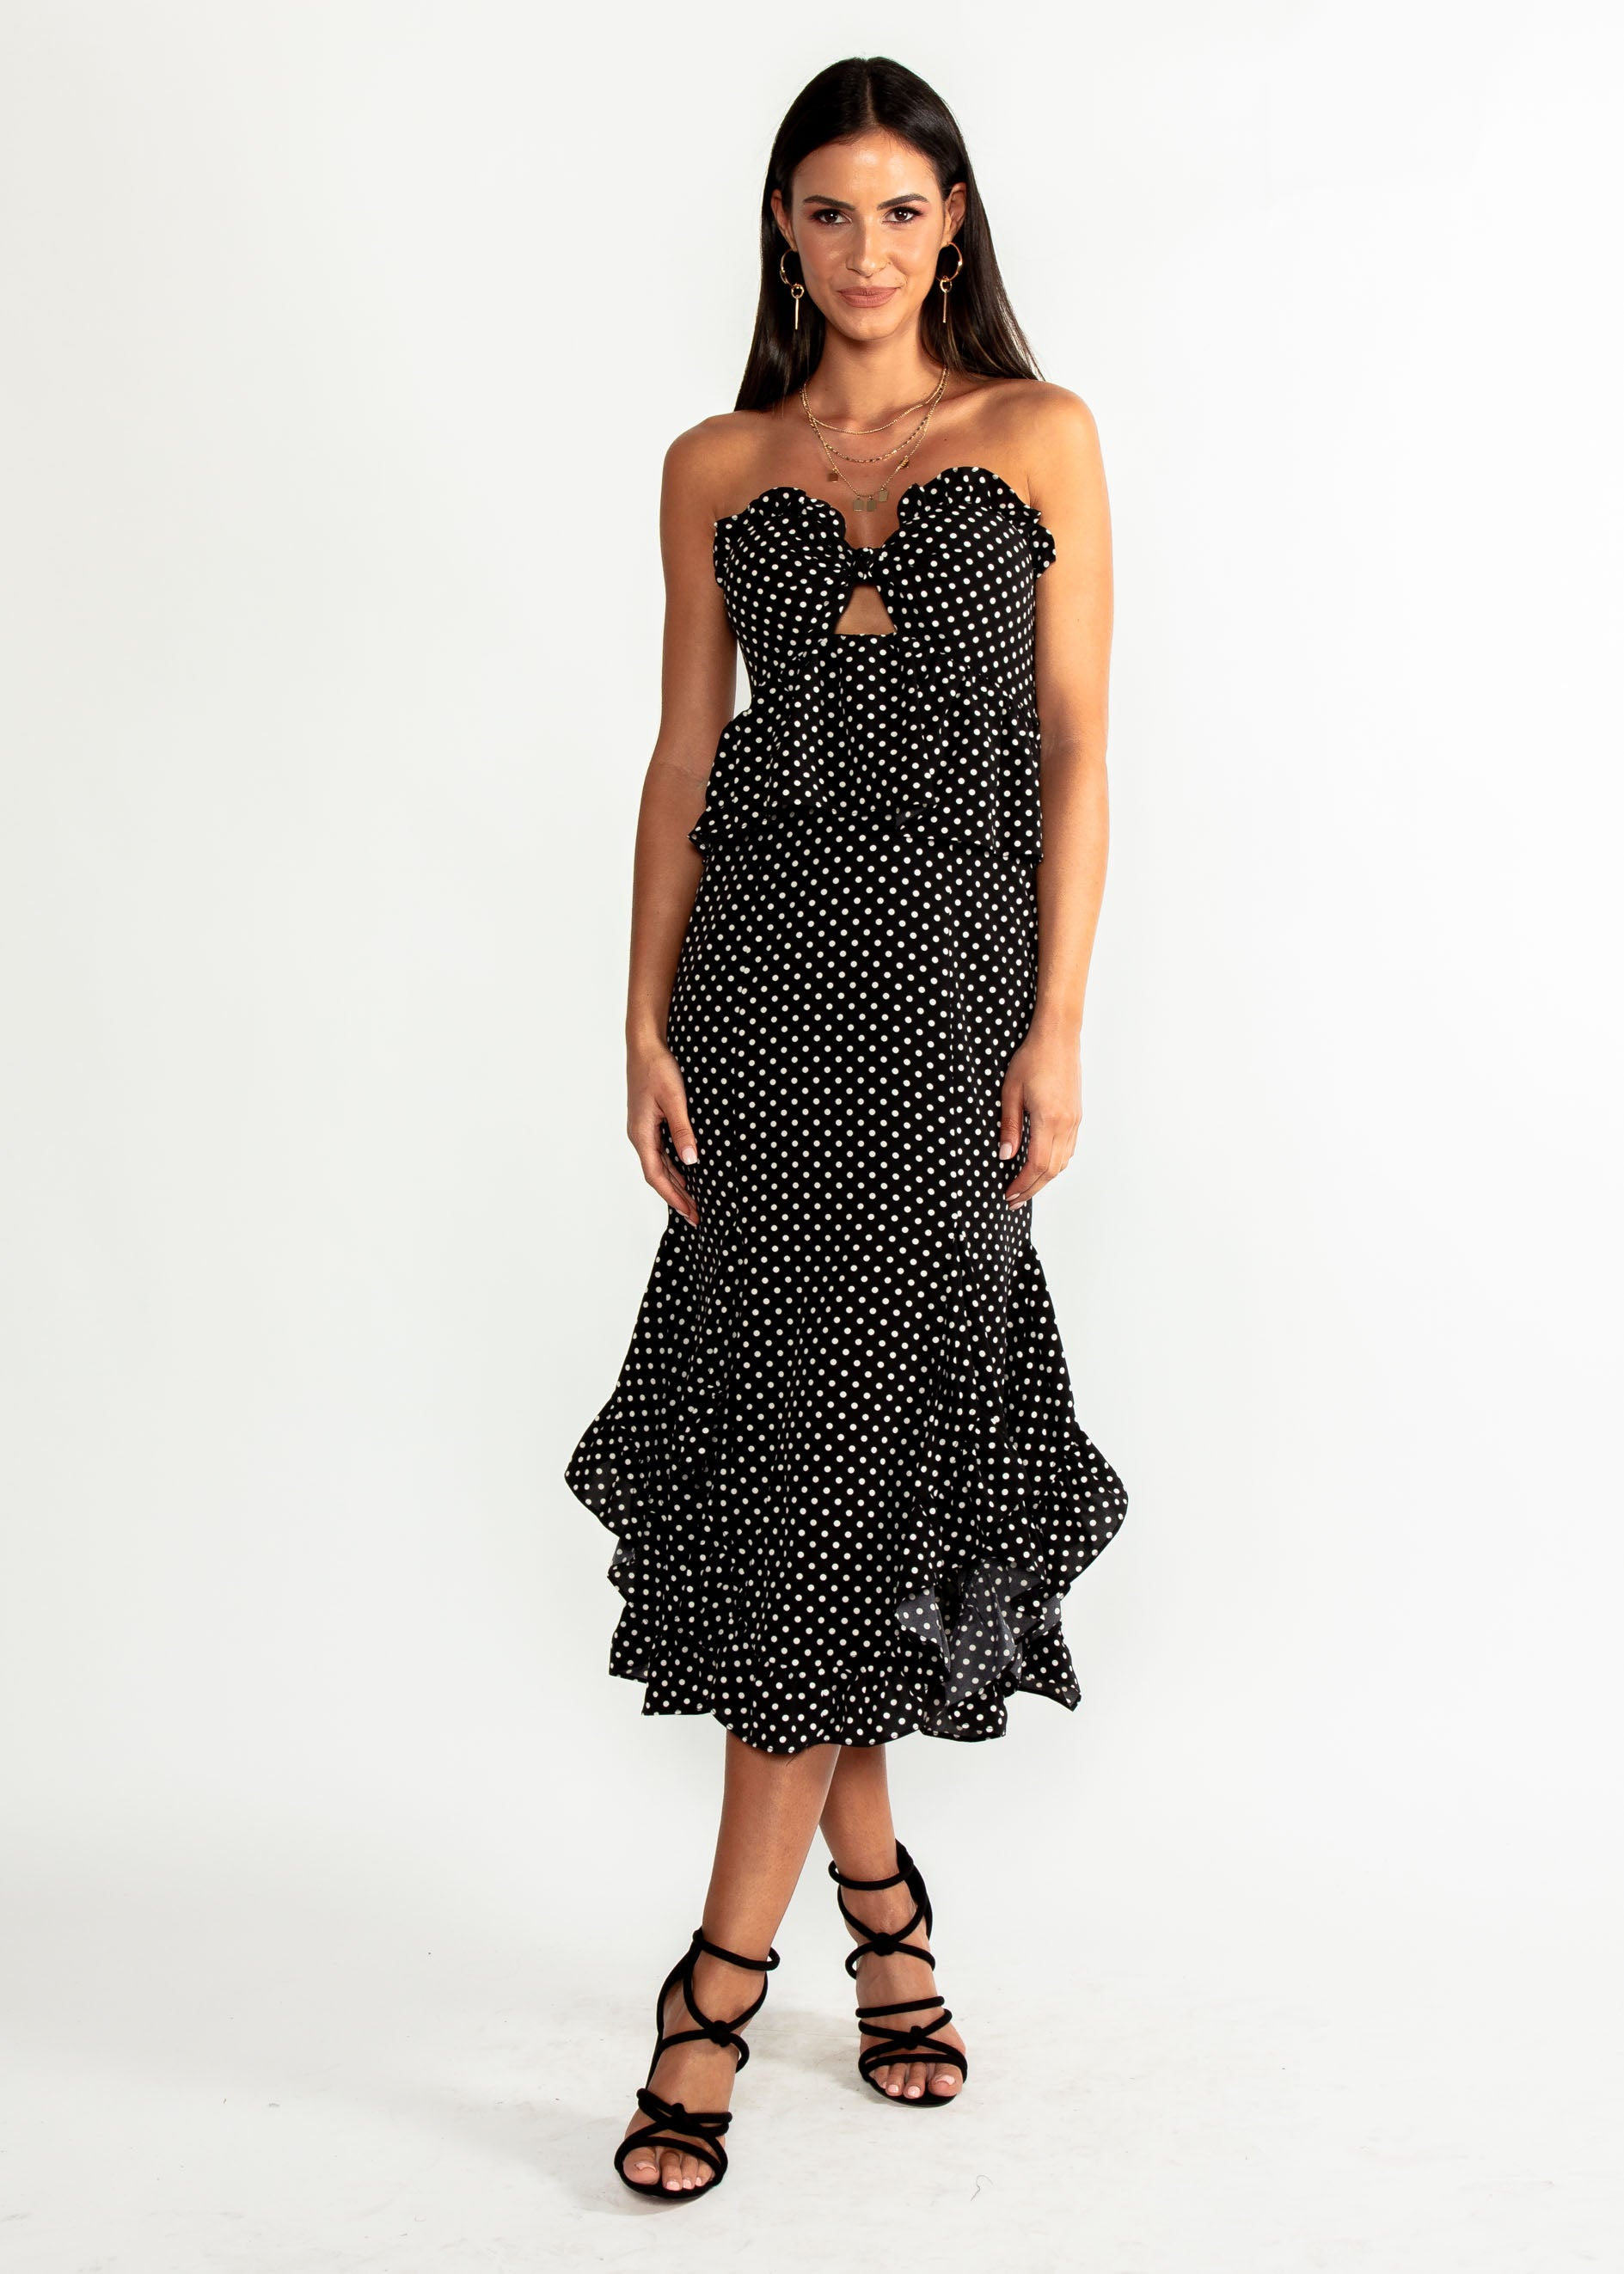 Heiress Strapless Midi Dress - Black Polka